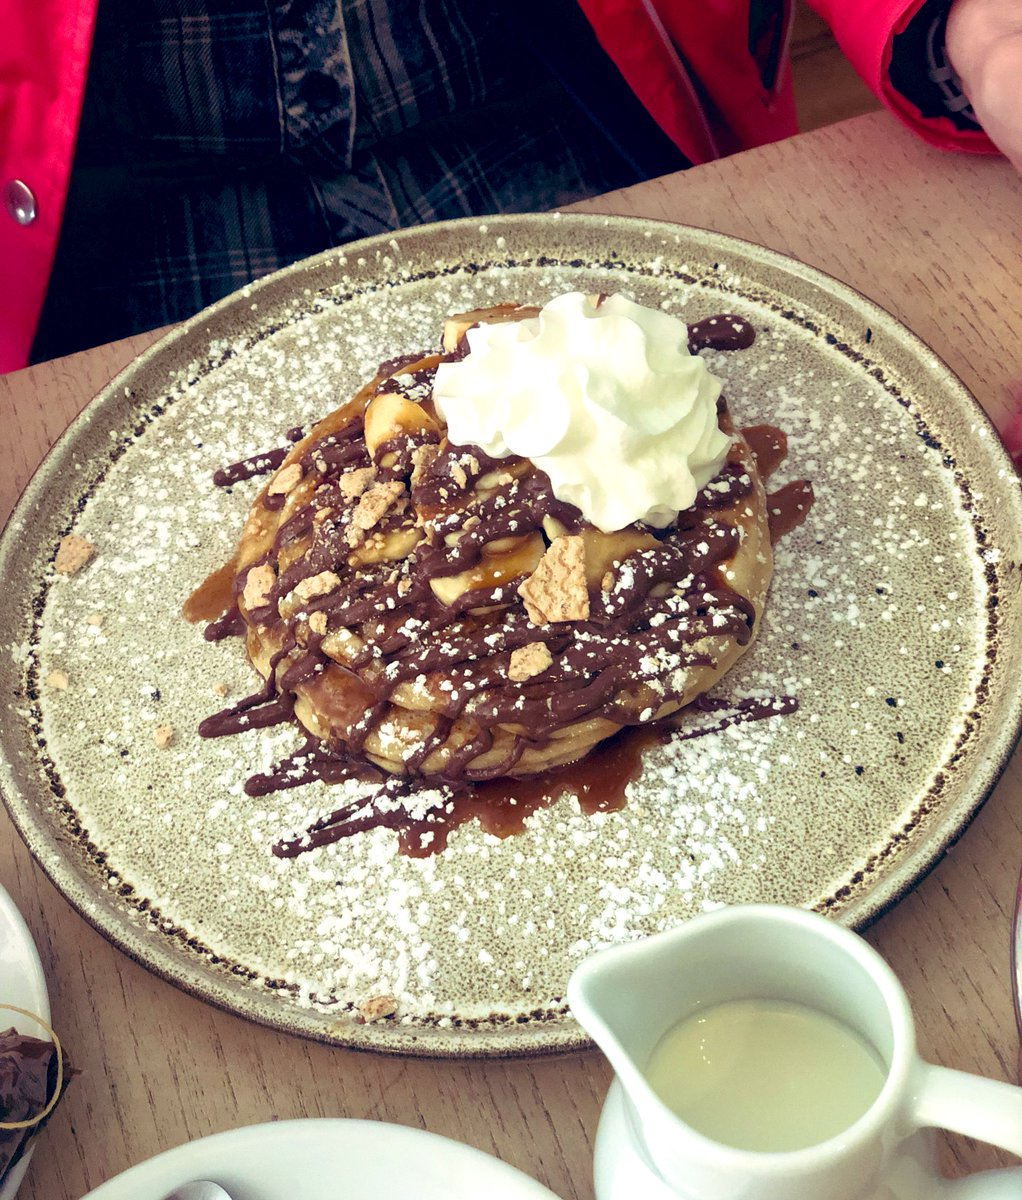 Took my mum for pancakes @HomeSweetHomeNQ today! My God they were good! ???? https://t.co/Ab5nxTwS8w